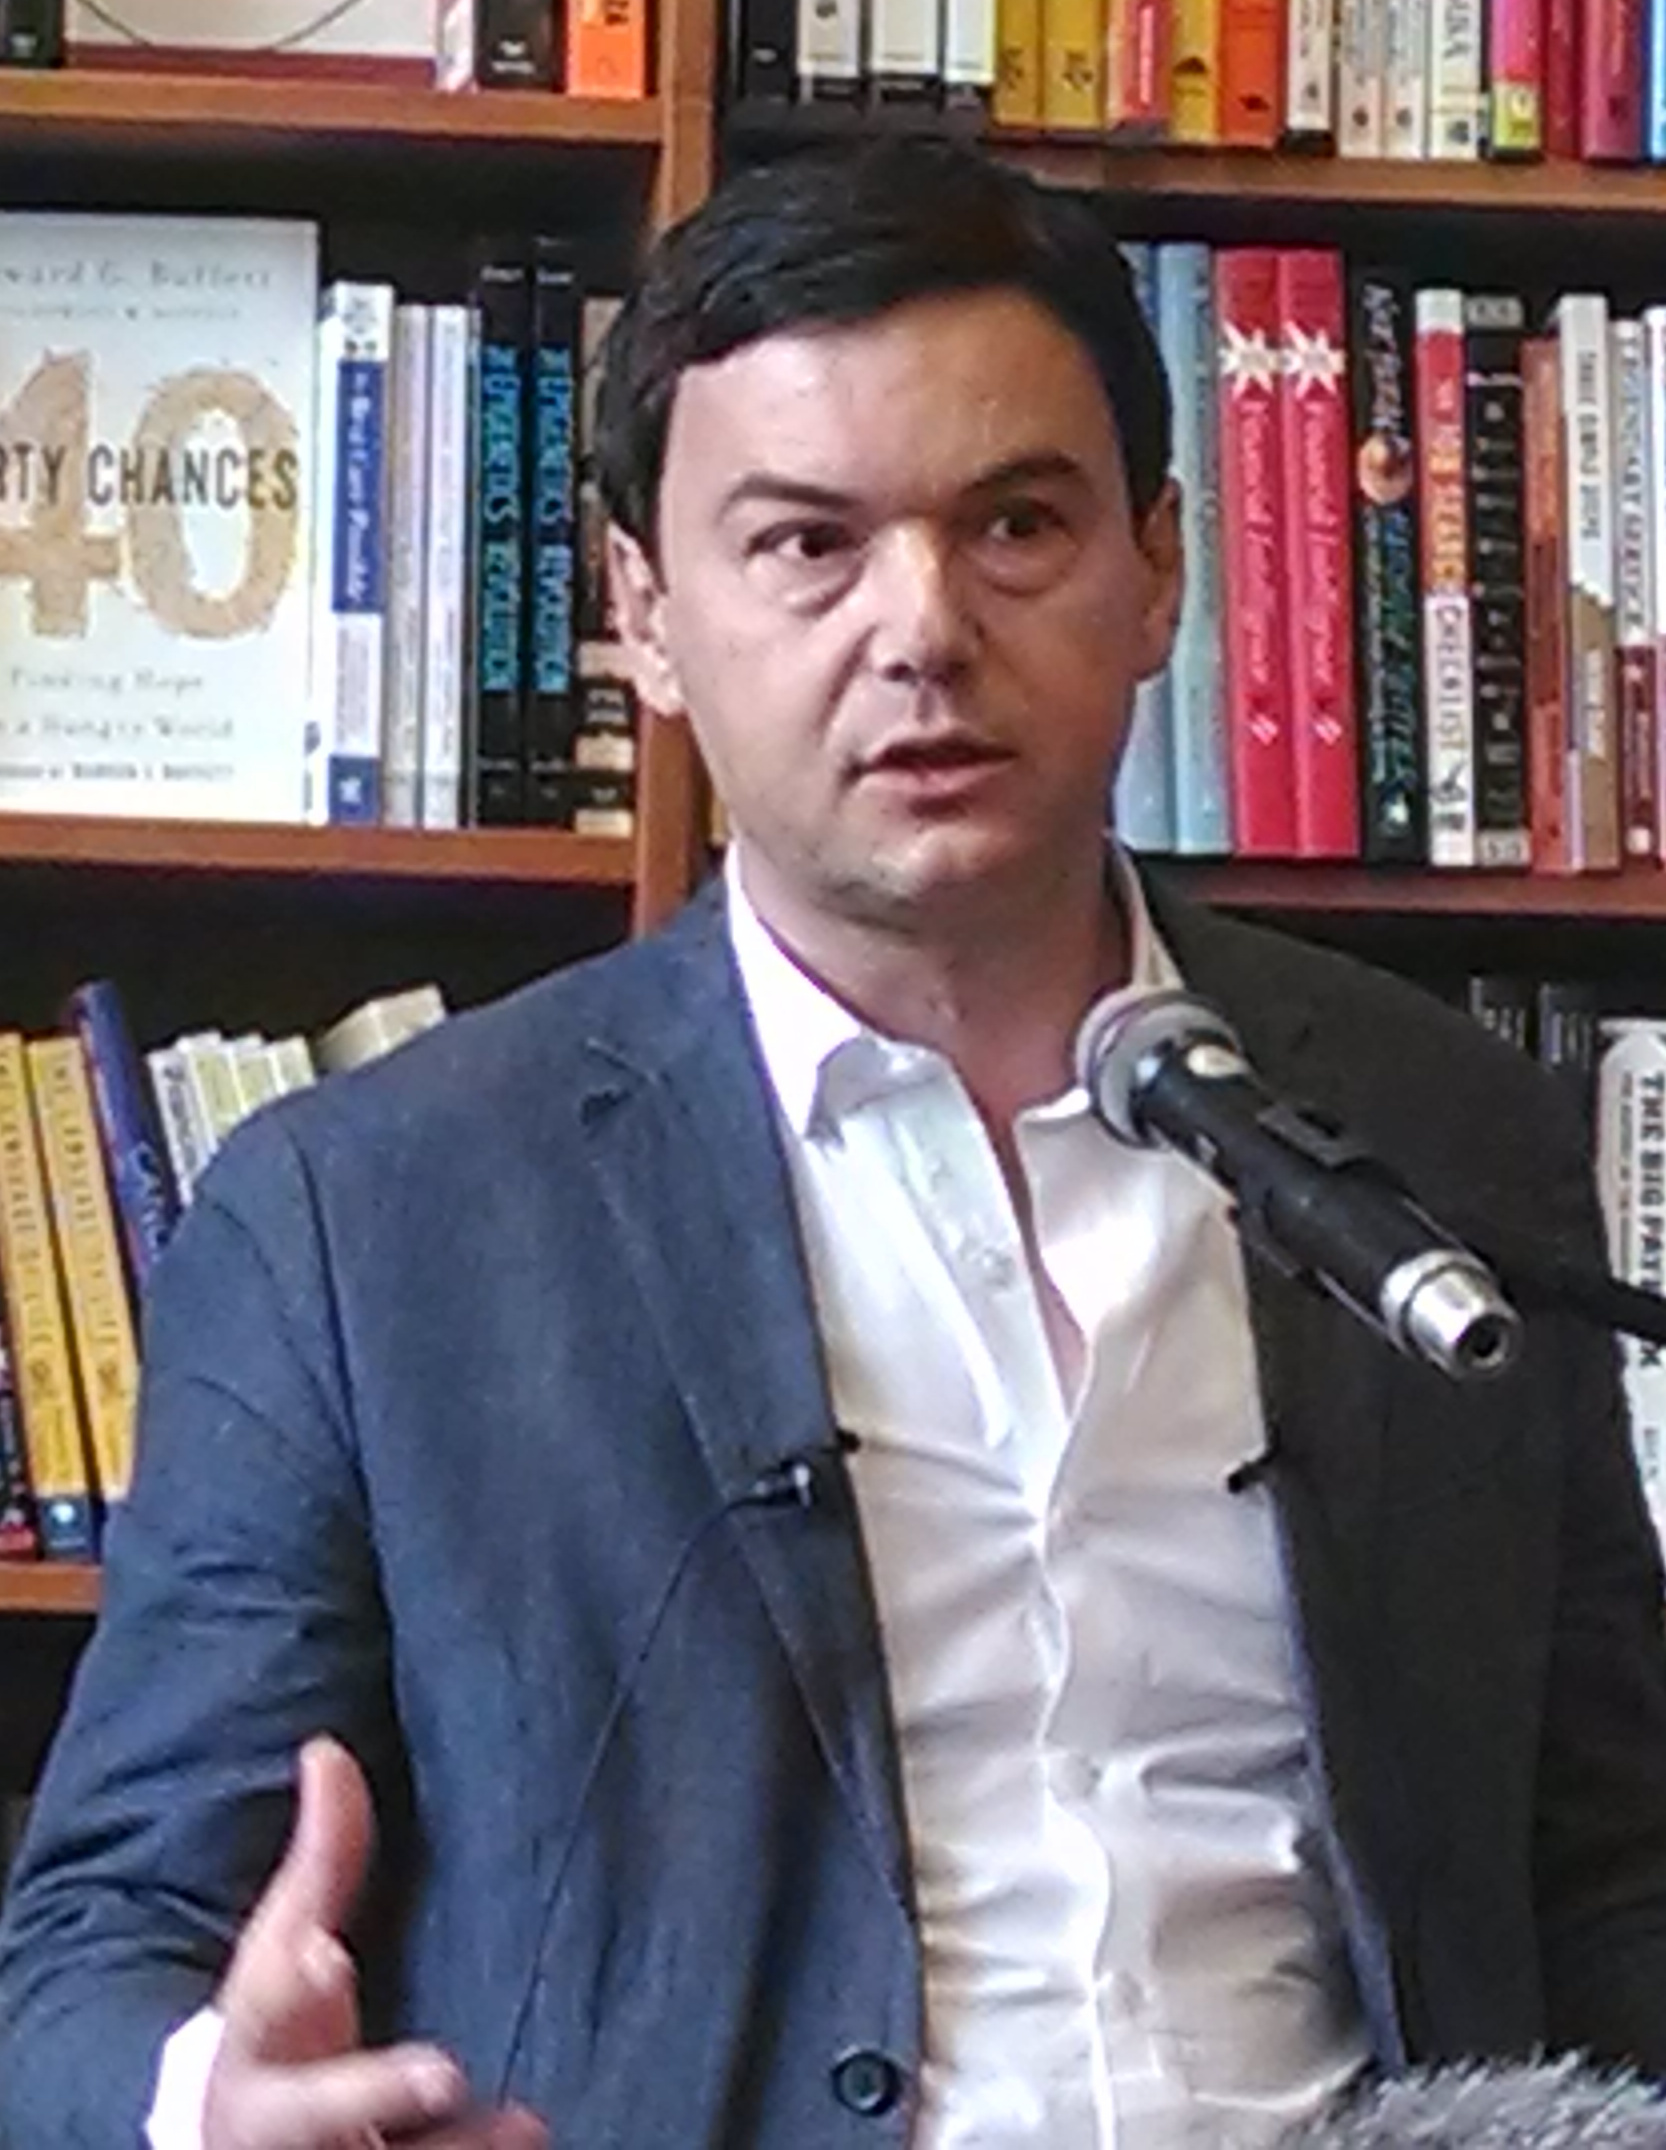 Thomas Piketty - Wikipedia